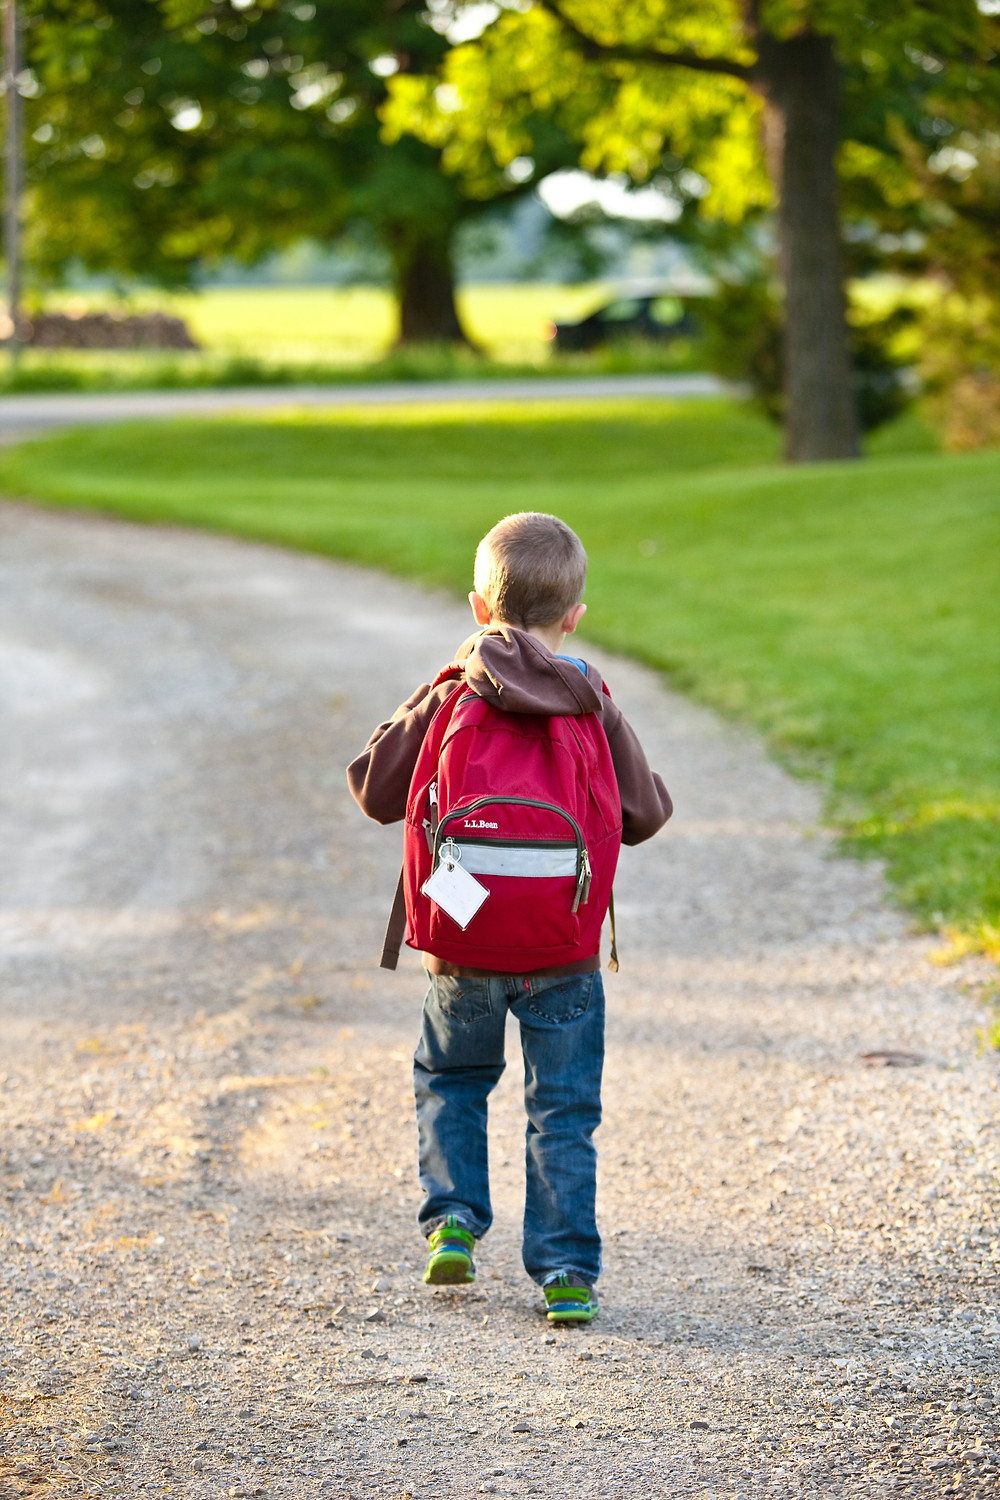 A child on his way to school